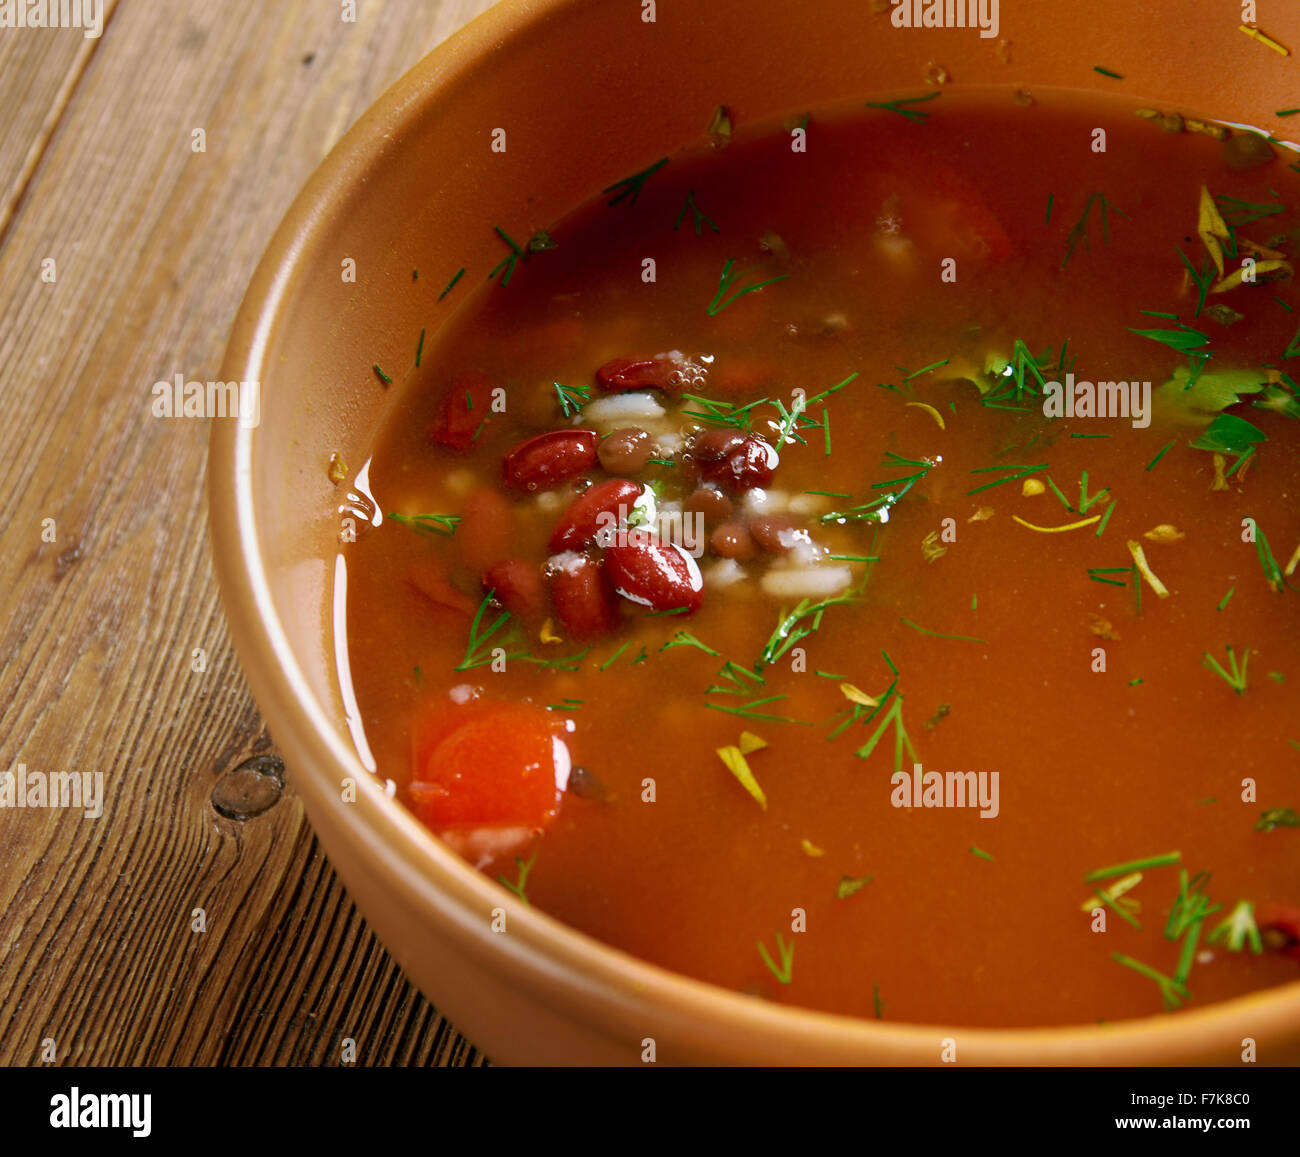 Mixed Sprouted Beans Stockfotos & Mixed Sprouted Beans Bilder - Alamy